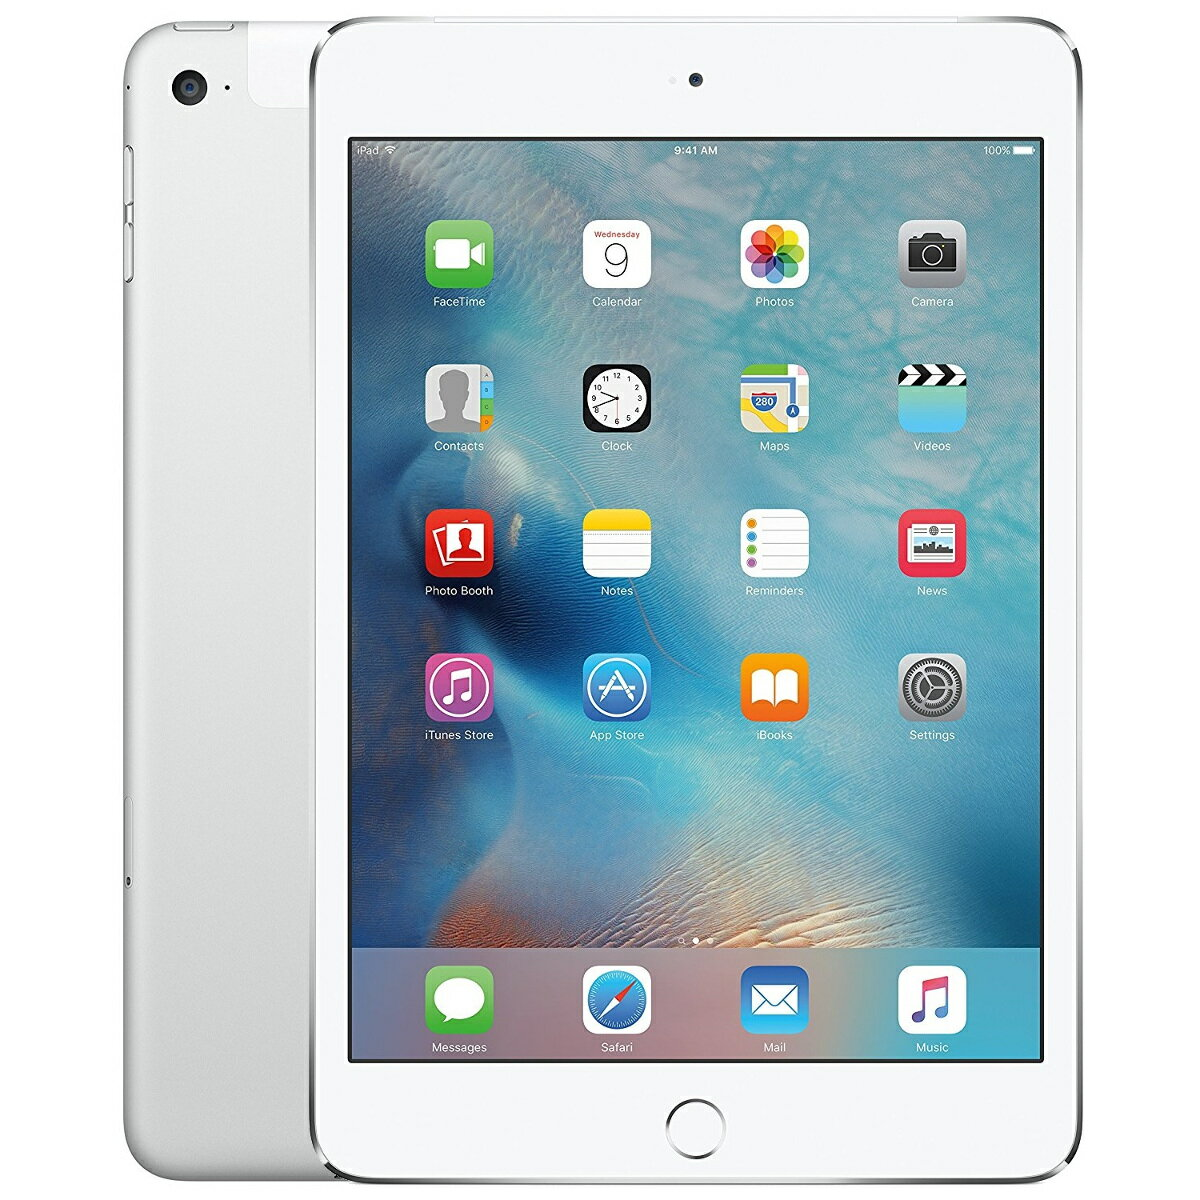 【ポイント最大27倍!】中古タブレットApple iPad Air2 Wi-Fi +Cellular 64GB au(エーユー) シルバー MGHY2J/A 【中古】 Apple iPad Air2 Wi-Fi +Cellular 64GB 中古タブレットApple A8X iOS11.3